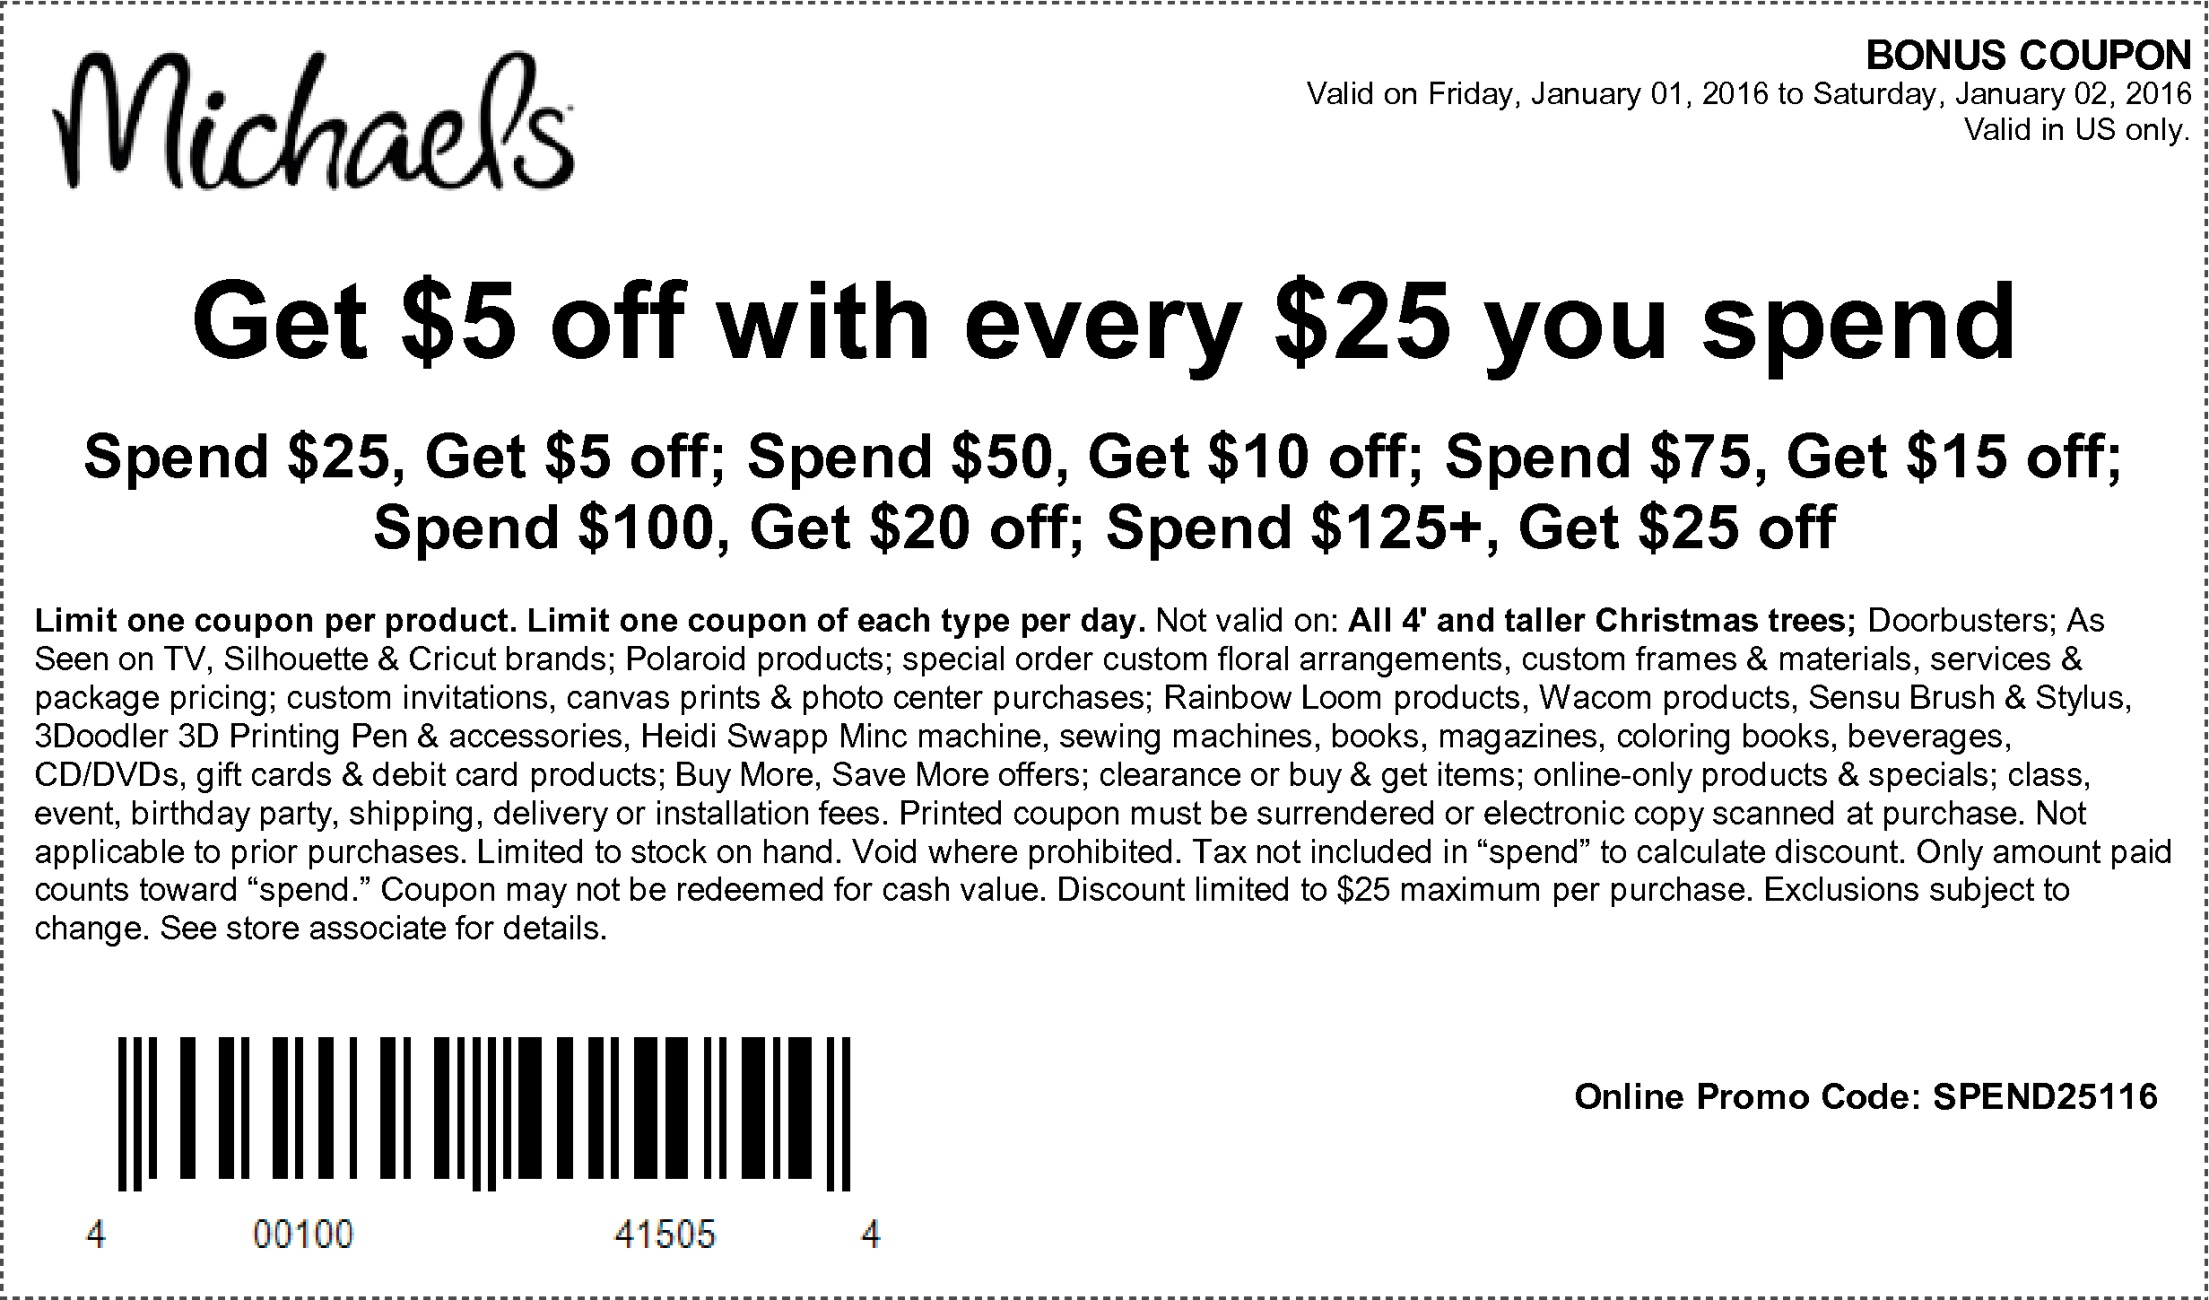 Michaels Coupons 2018 50 Off : Ninja Restaurant Nyc Coupons - Free Printable Michaels Coupons